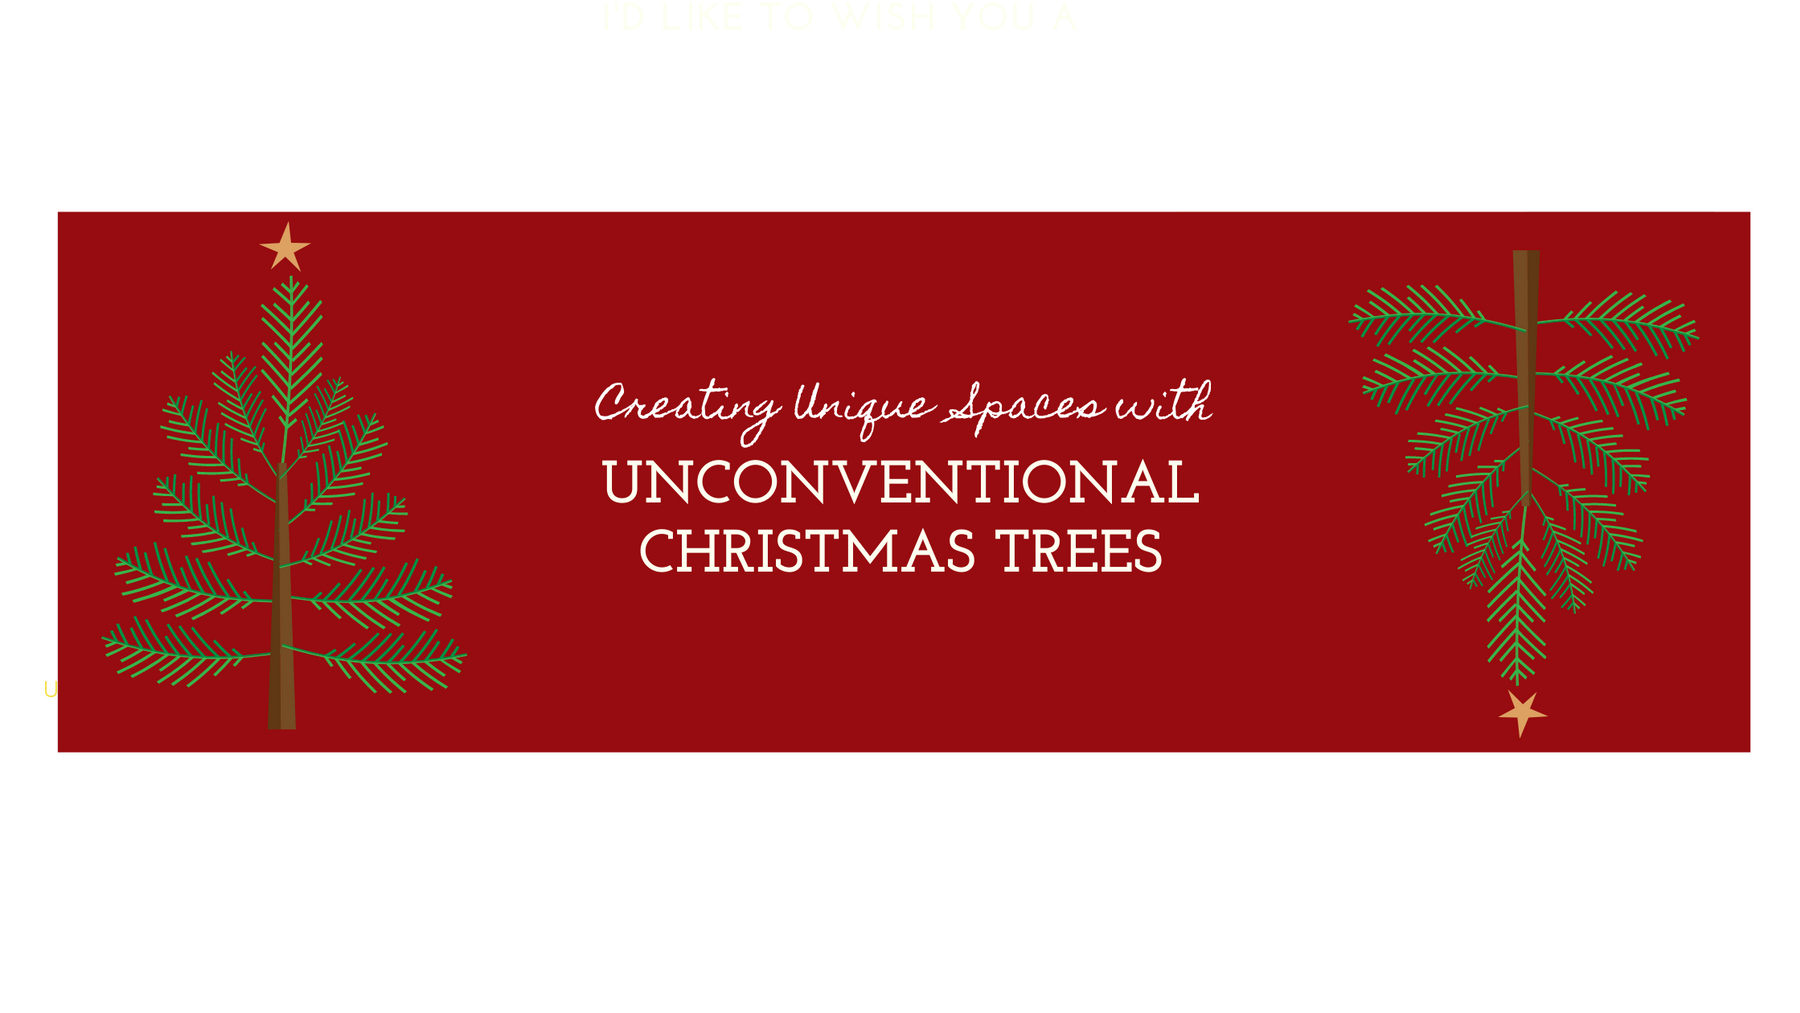 Creating Spaces with Unconventional Christmas Trees